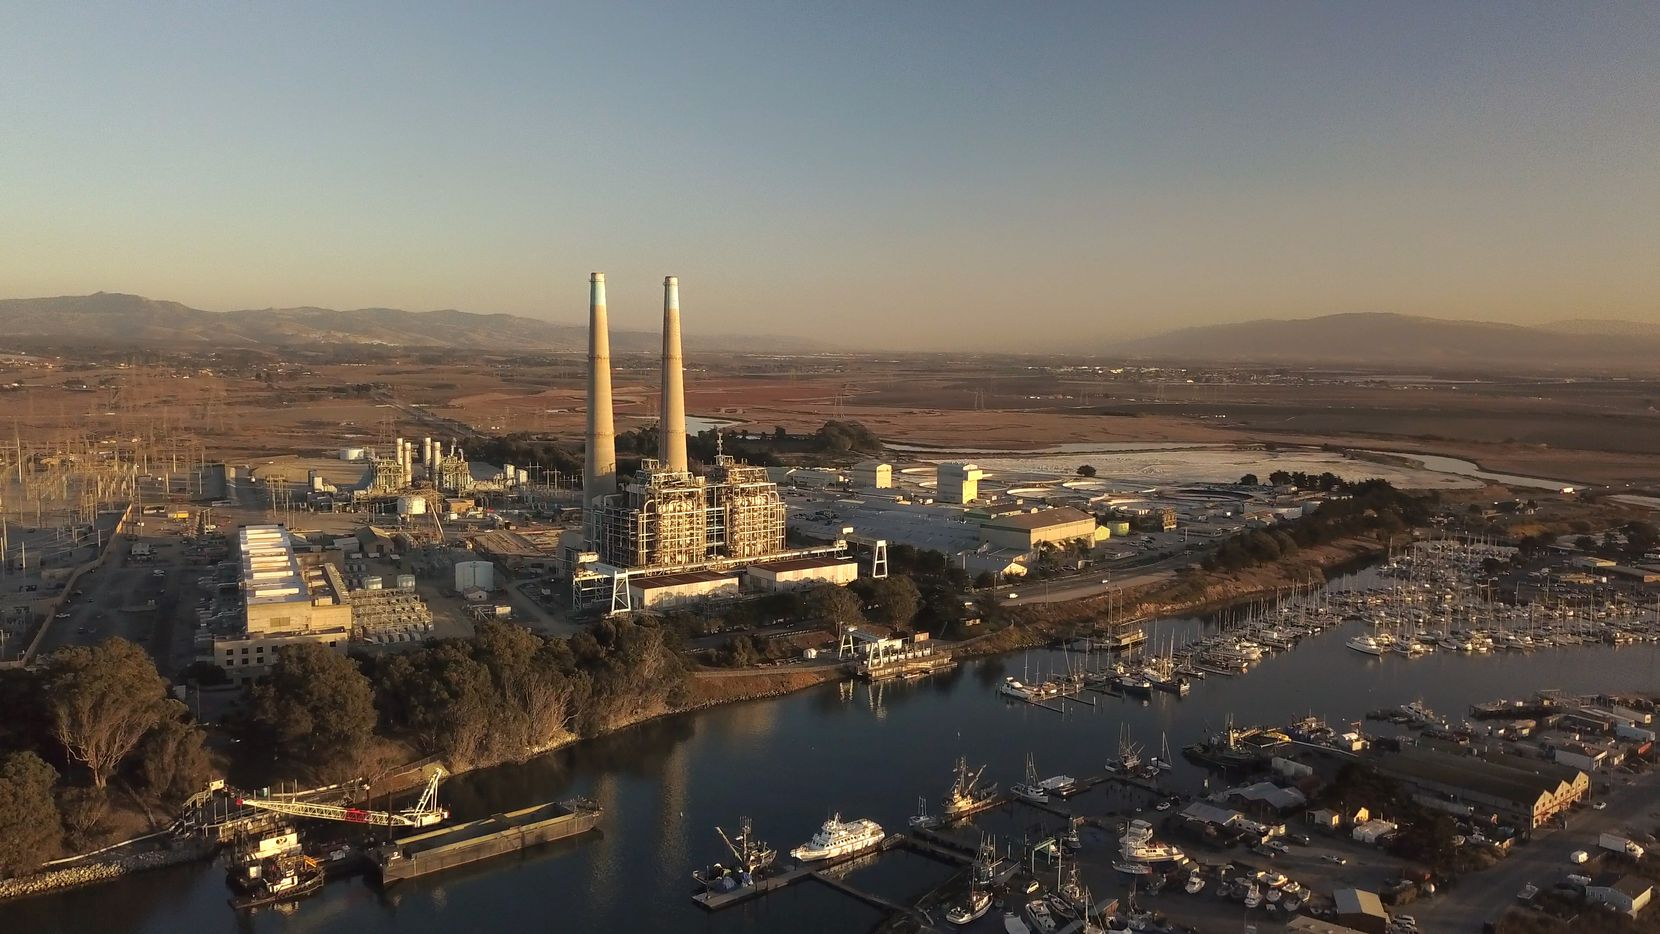 Vistra has plenty of room to add more batteries at its Moss Landing site. It plans to keep the two large smokestacks from its retired power plant because the community appreciates them as a landmark, said CEO Curtis Morgan.